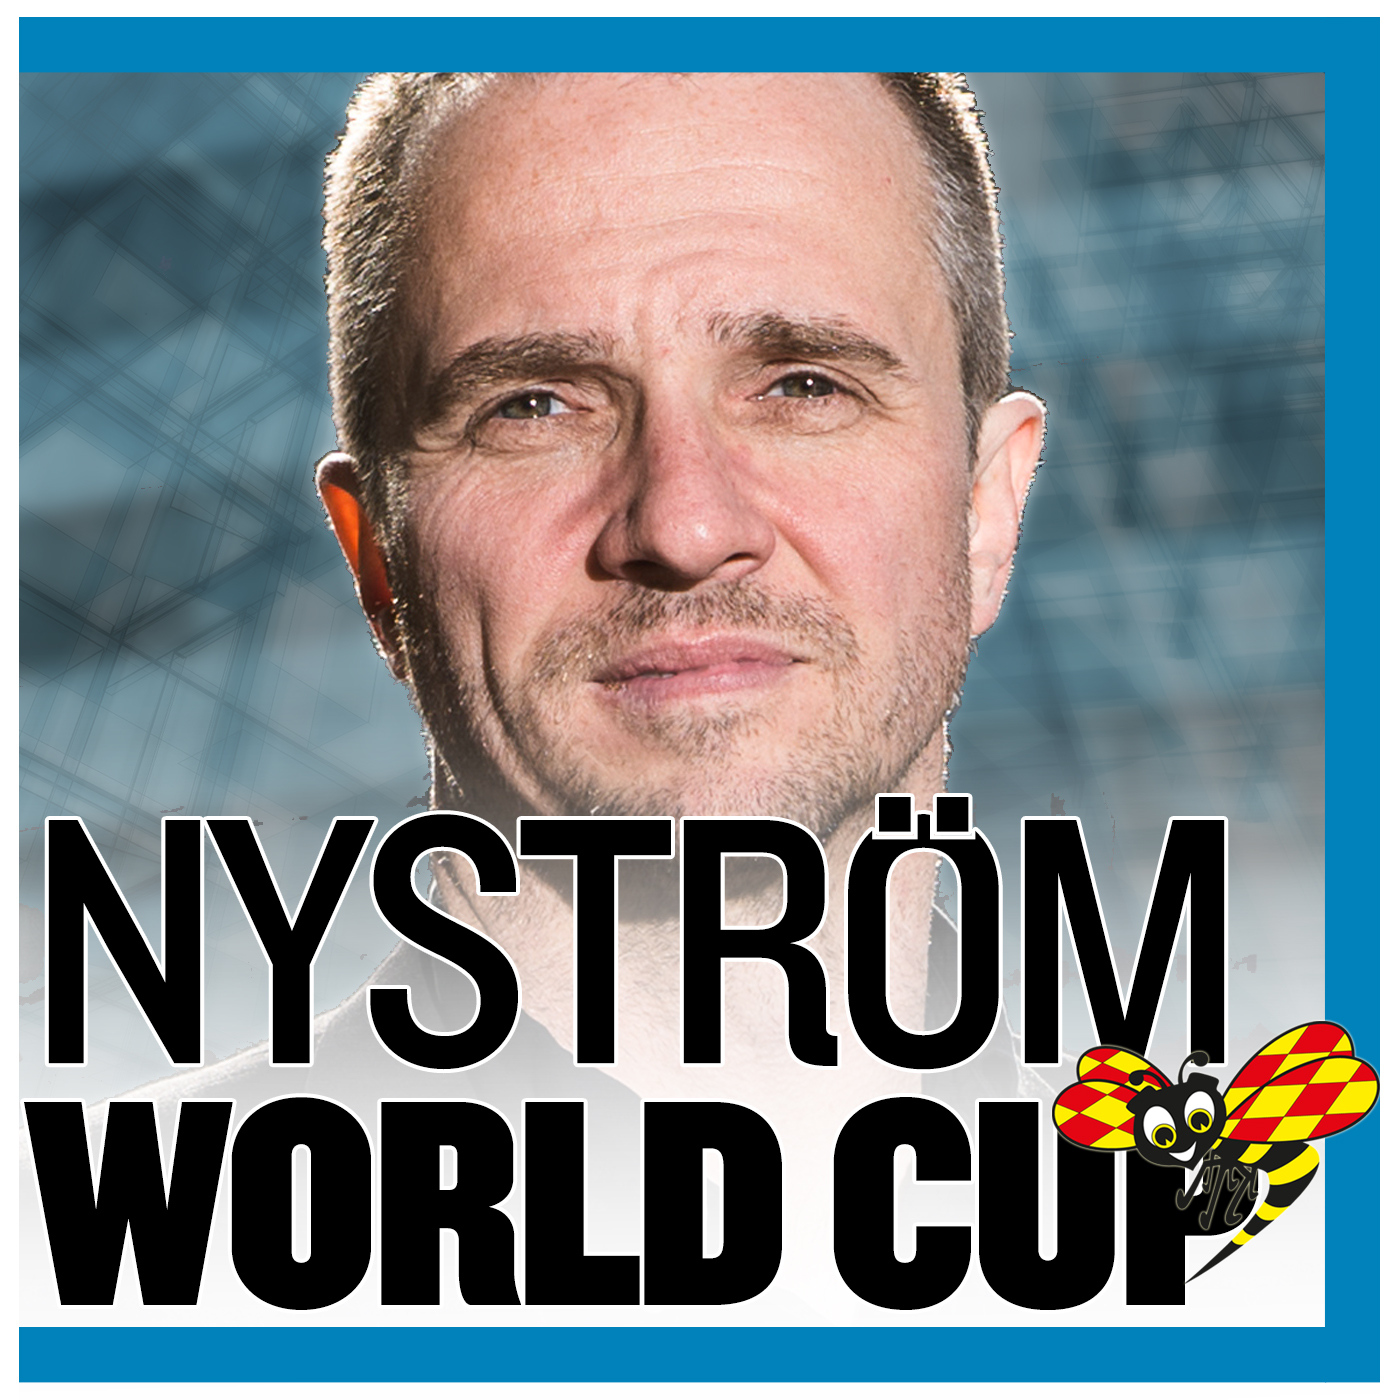 Nyström World Cup